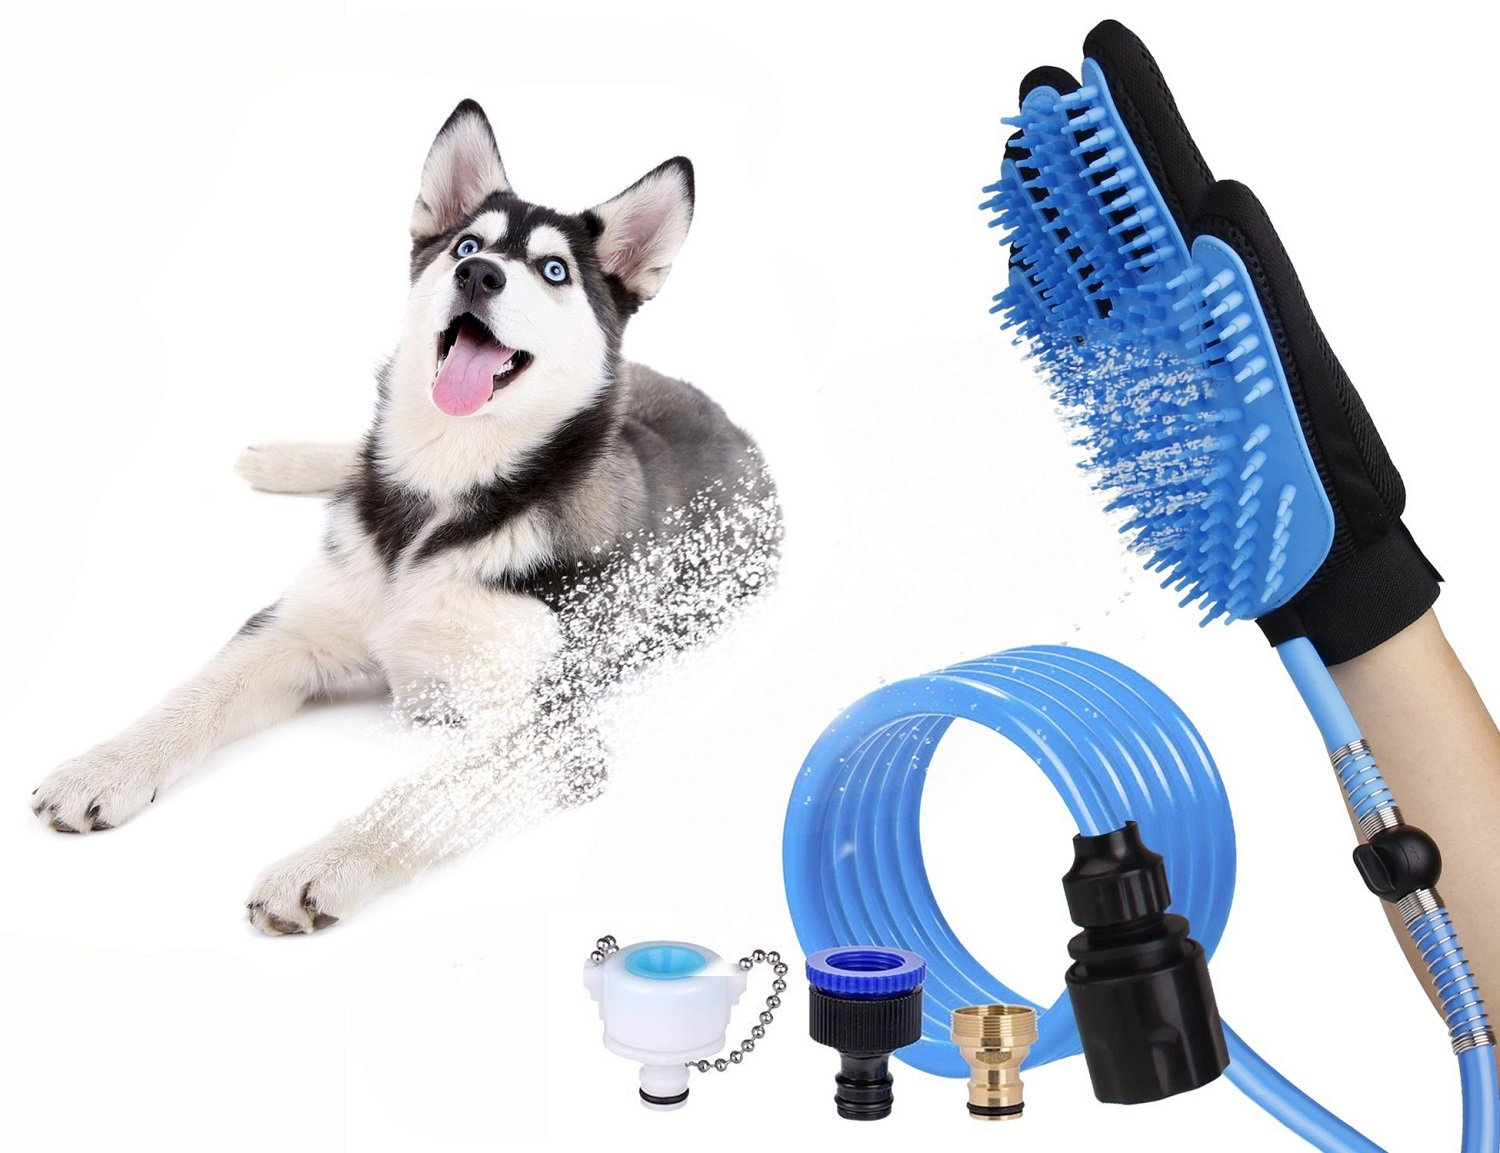 MSDUSA Pet Bathing Tool, Pet Shower Sprayer and Hair Removal Mitts Gloves to Bathing, Grooming, Warm Touch for Dogs/Cats/ Rabbits or Other Pets with a 8.2 Foot Hose and Bath Accessories Set